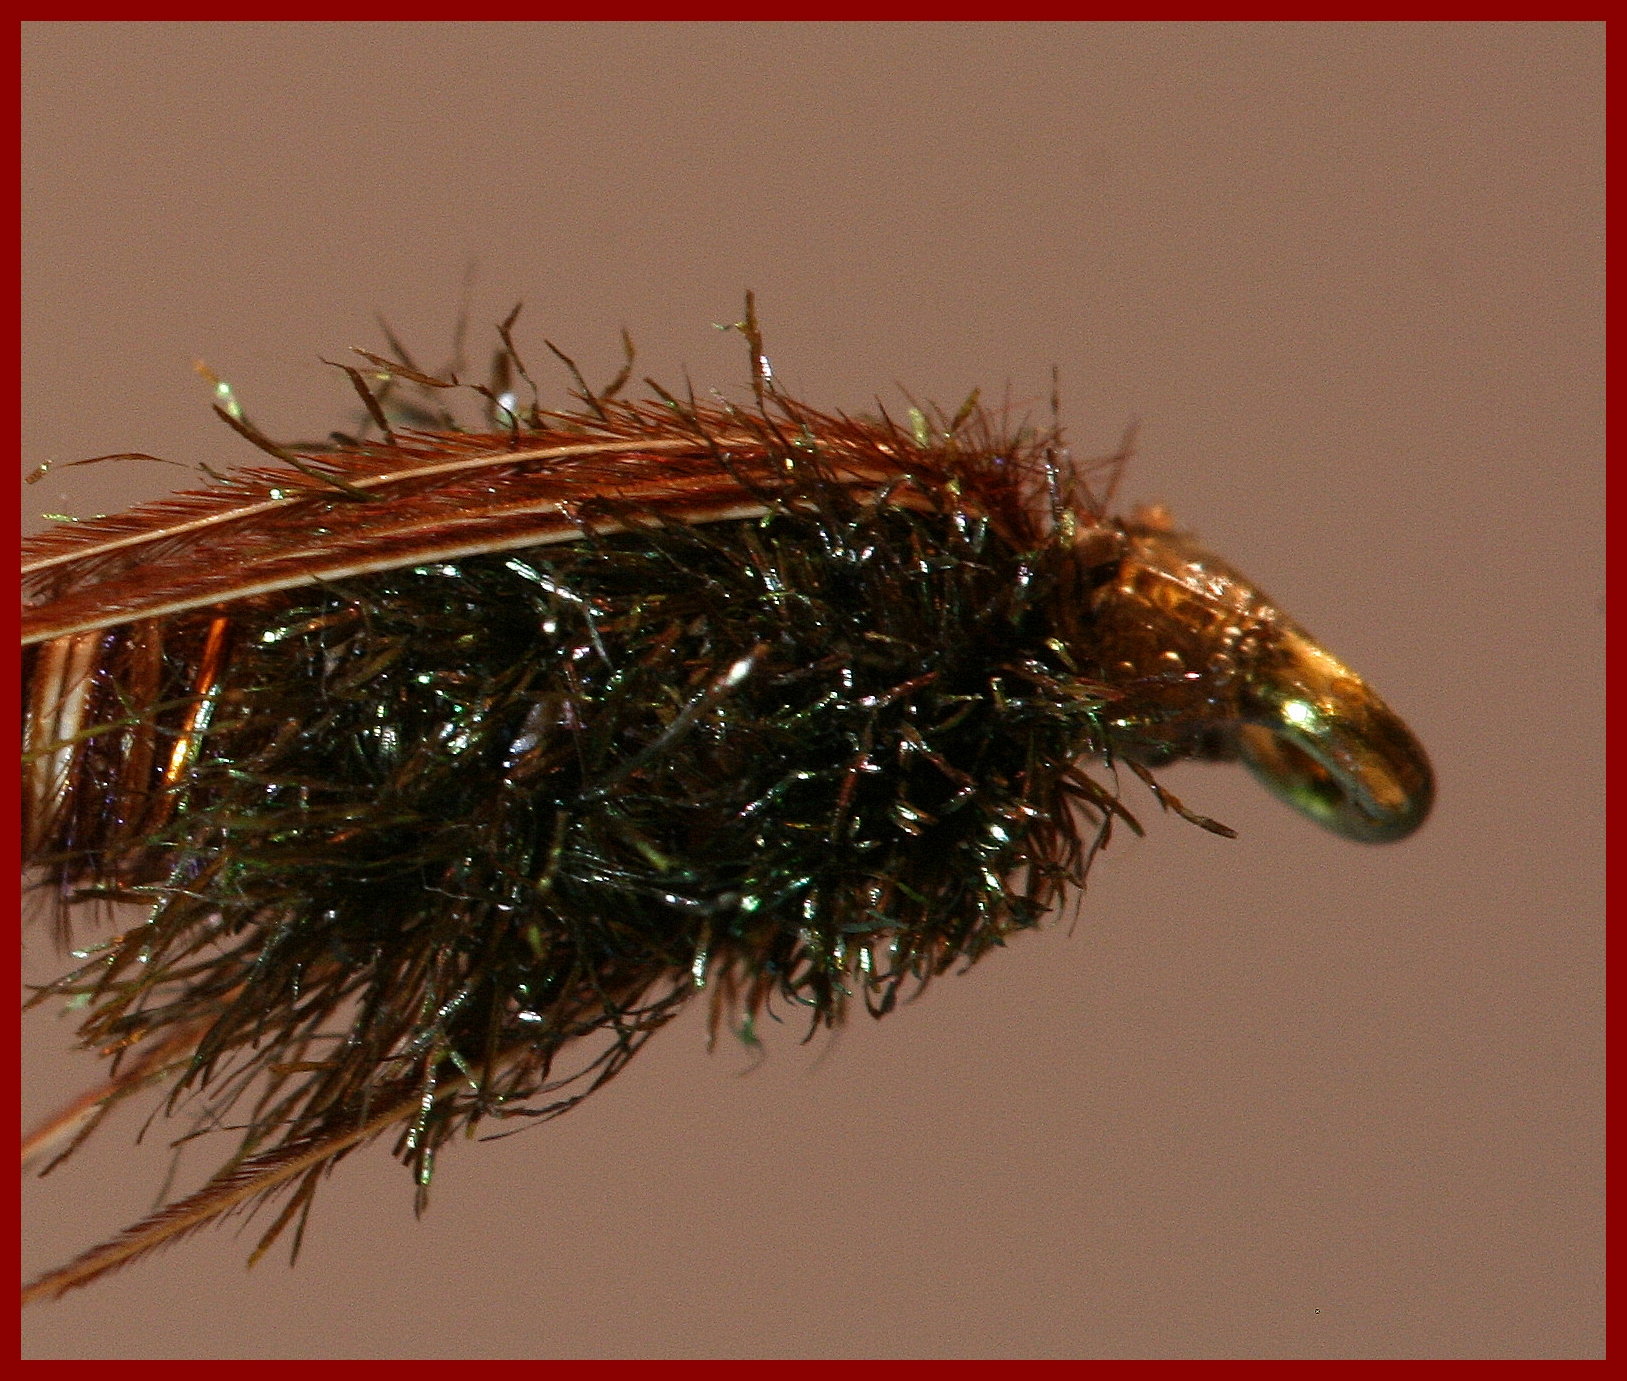 Pheasant Tail Nymph by SwittersB (Thorax, Thread Head)